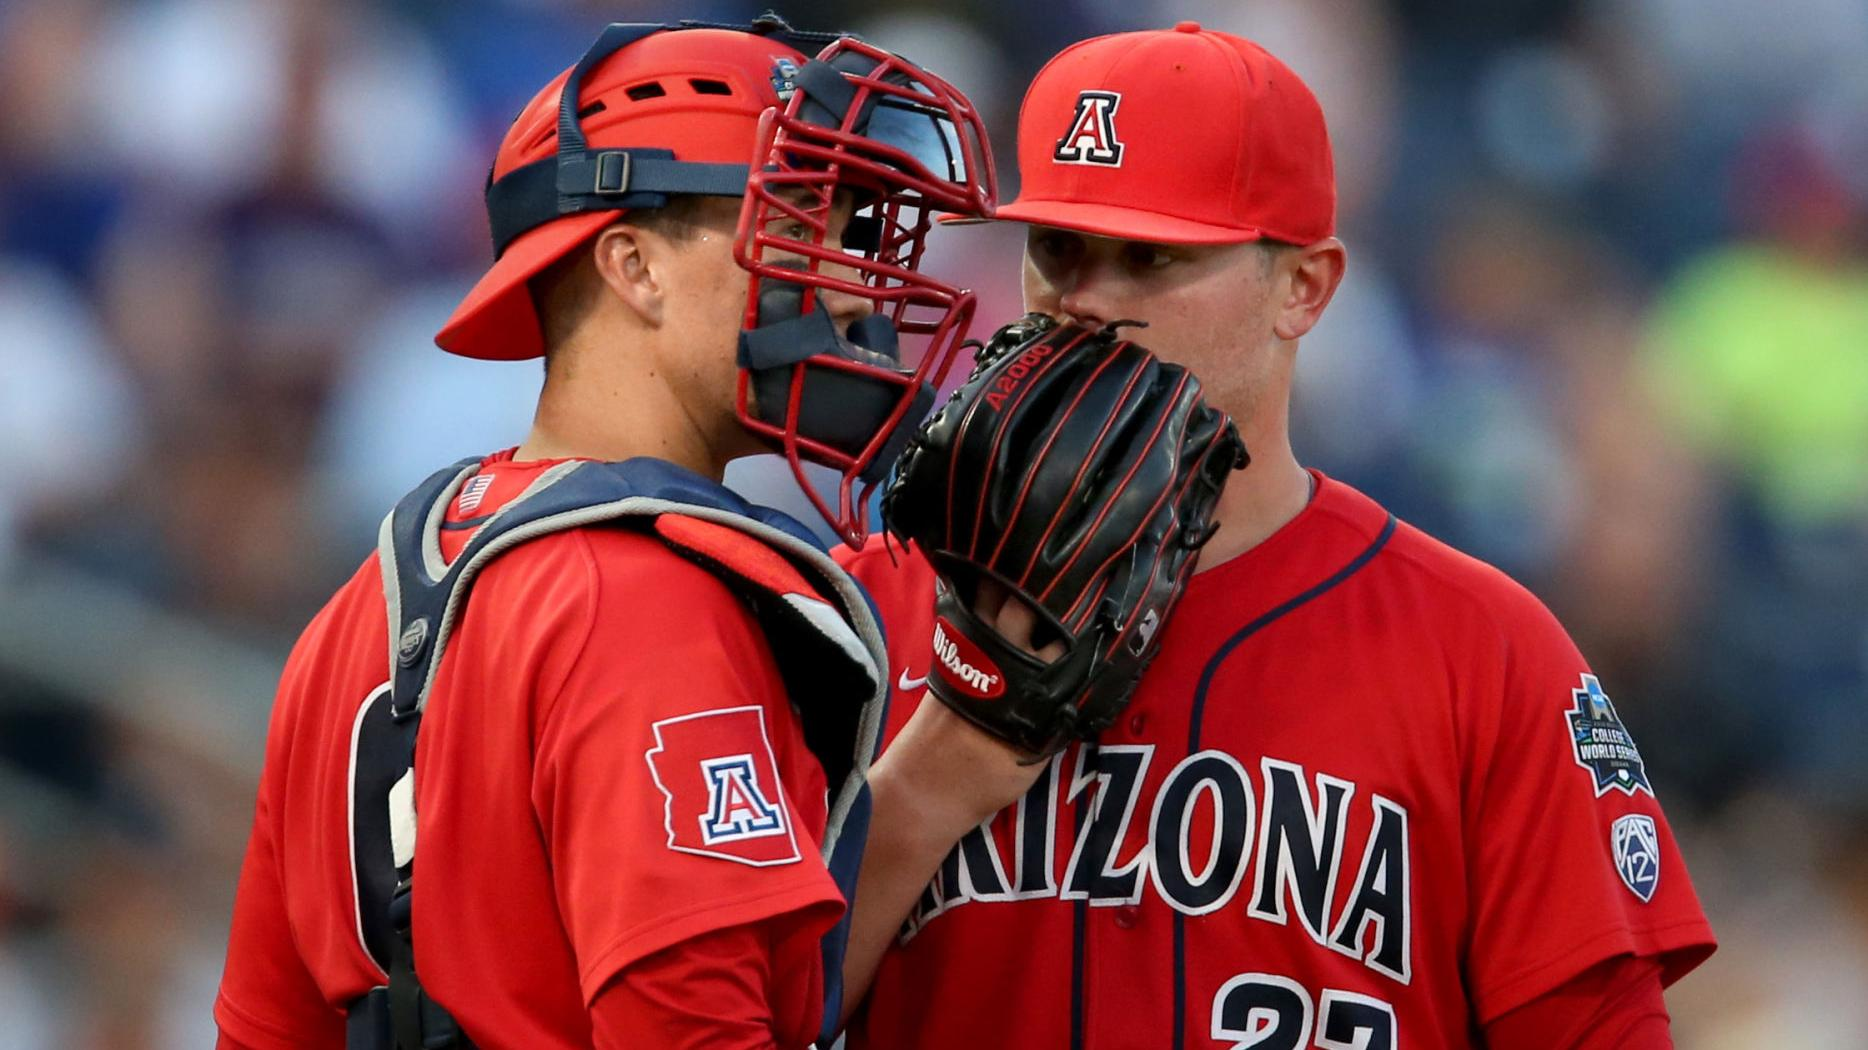 http://tucson.com/sports/arizonawildcats/baseball/jc-cloney-to-start-for-arizona-in-game-of-college/article_3323a4c8-3cae-11e6-b0dc-2f55f4c94600.html